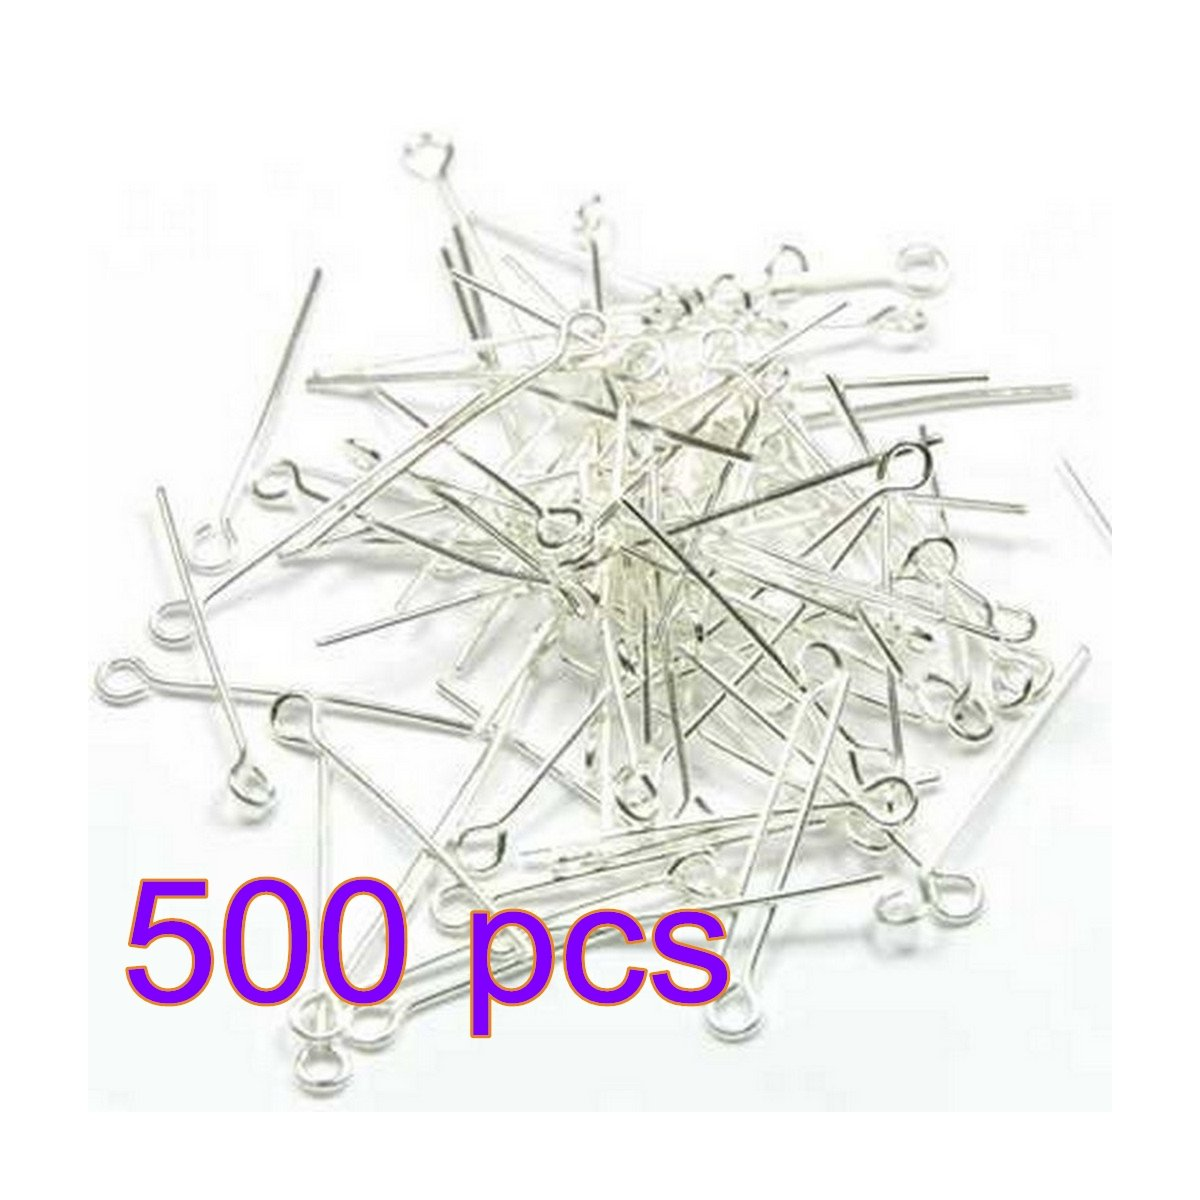 Photovie 25 mm silver Round Head Pin Lot 500 Beaded Needle Round Nead Nails for Beading Tools